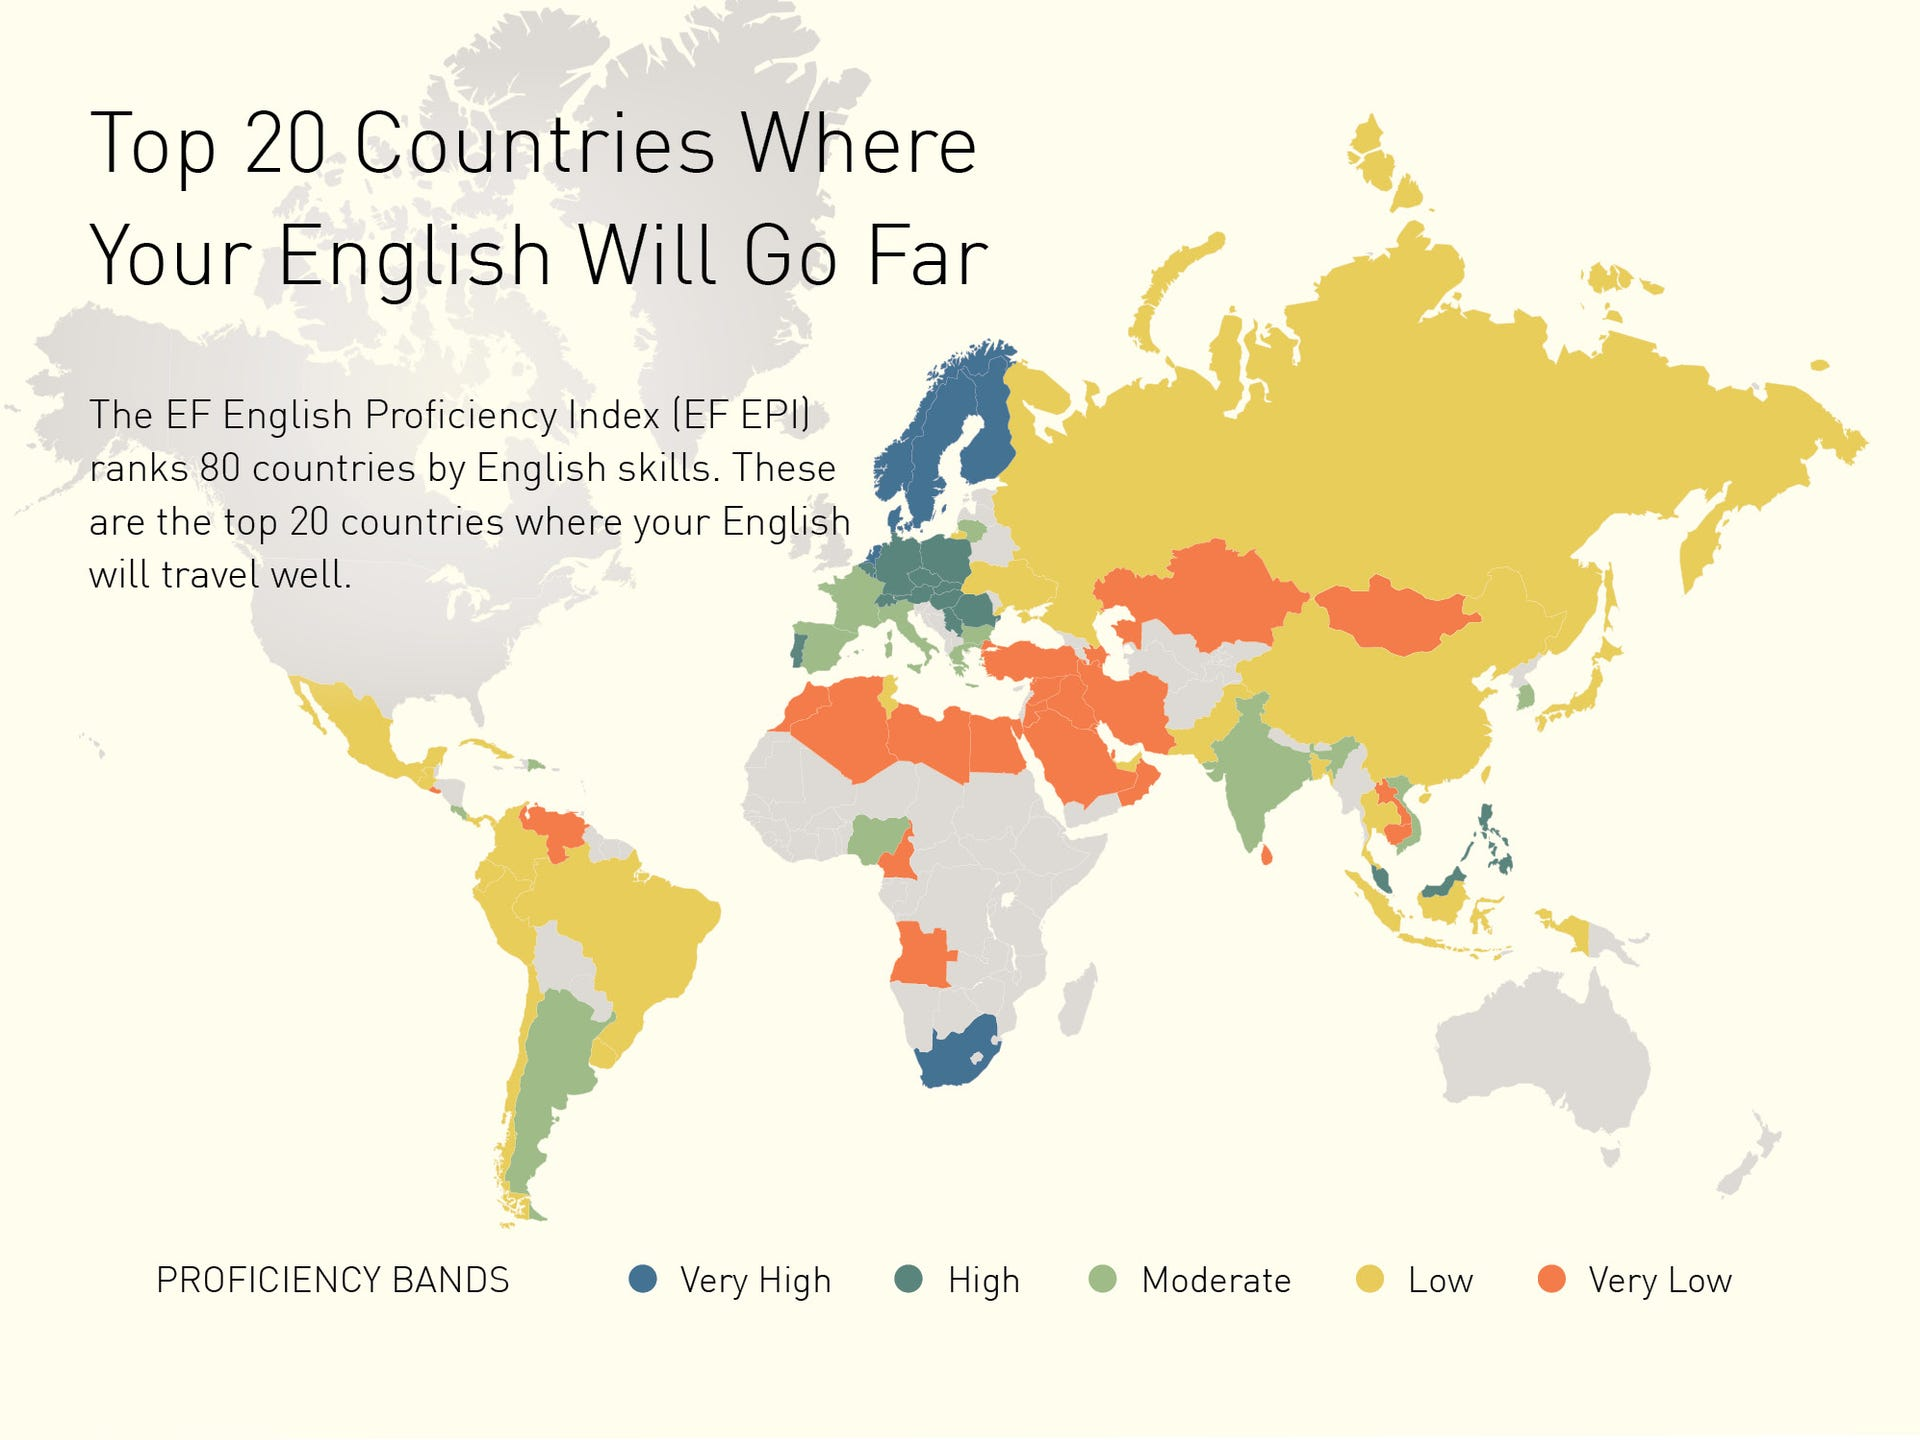 Top 20 countries where English travels well